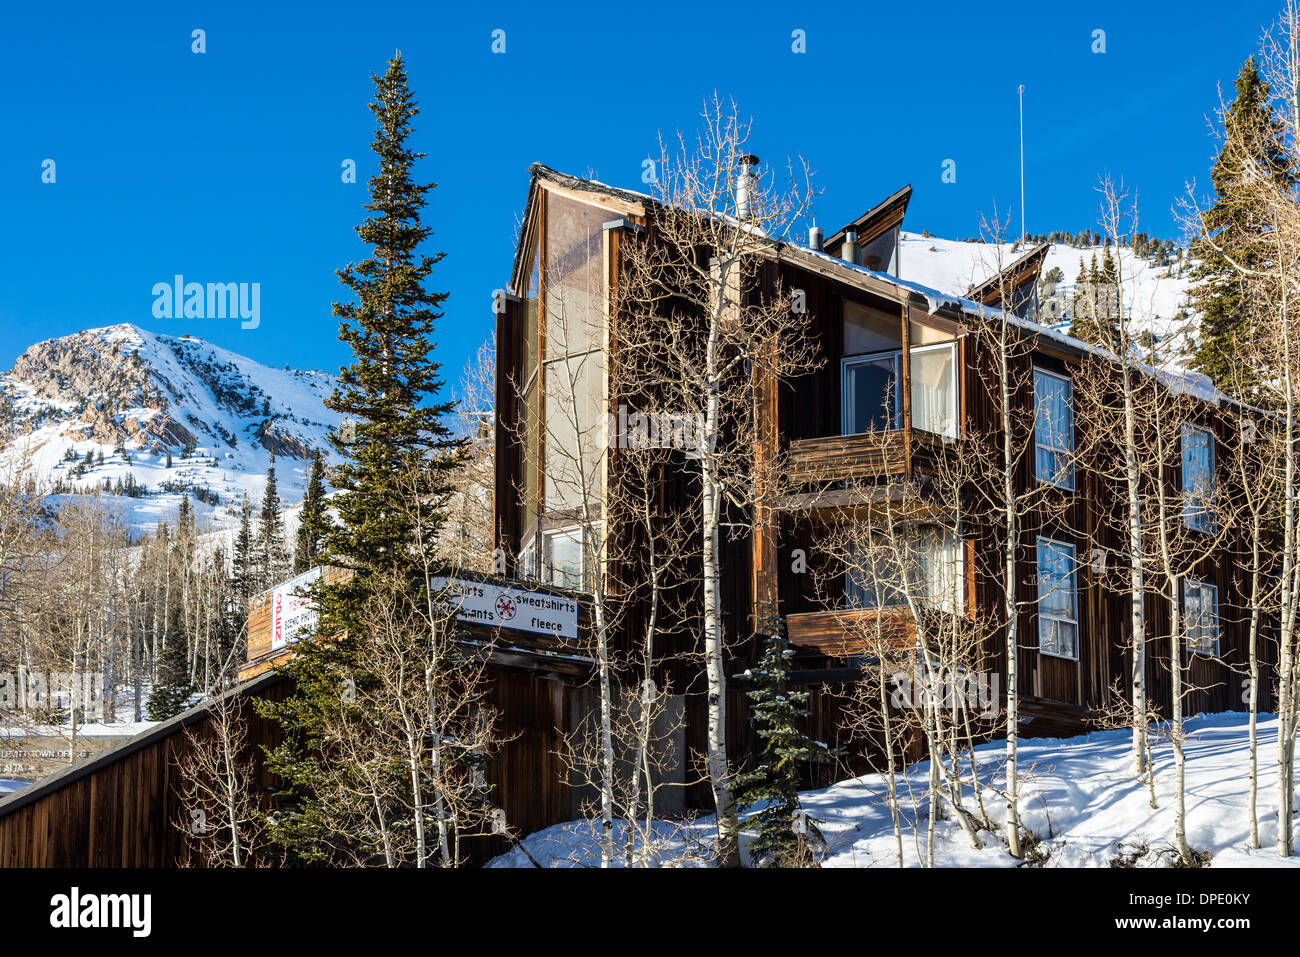 A ski condominium at Alta Ski Resort. Utah, USA. - Stock Image